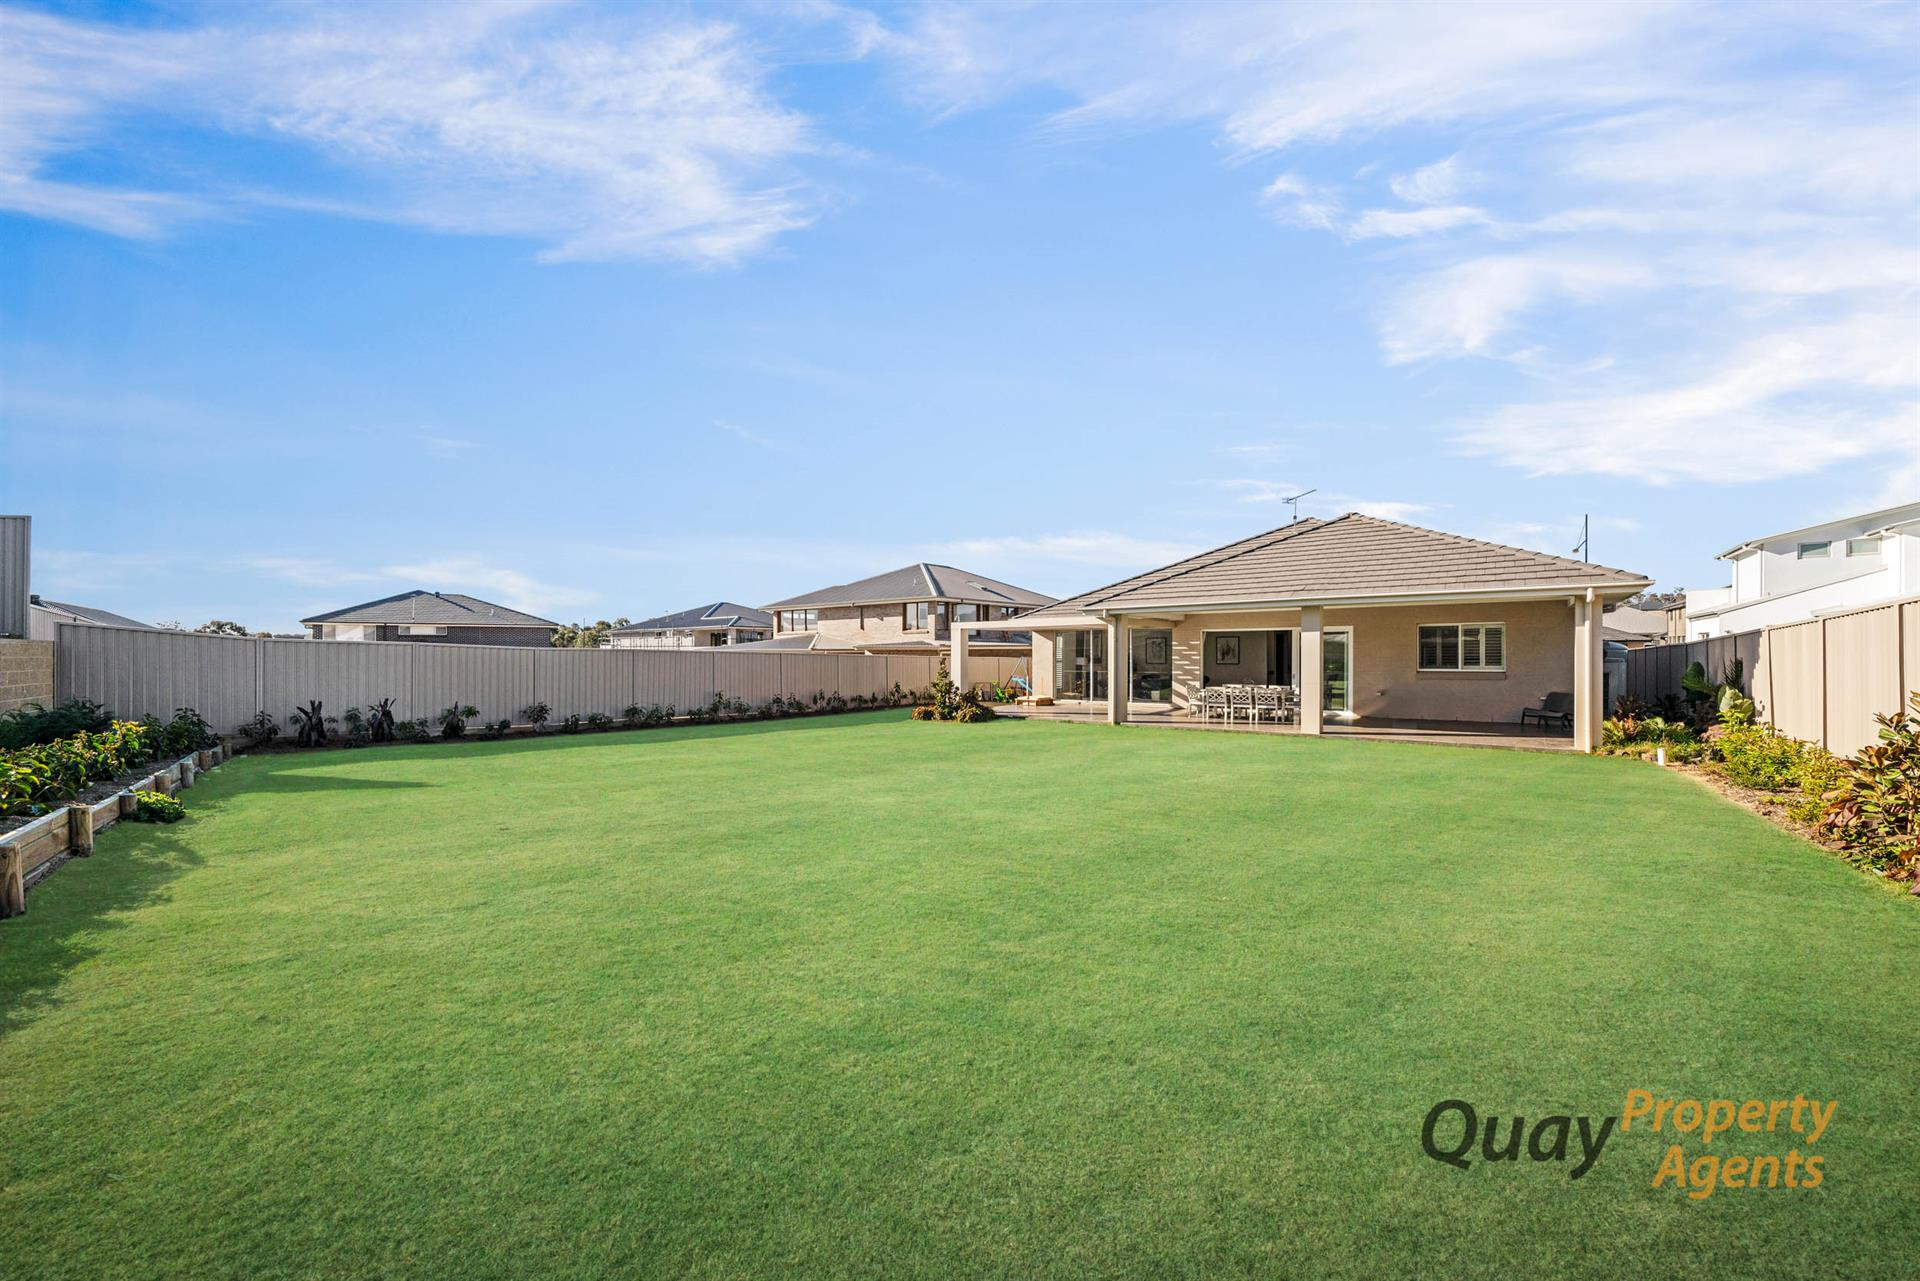 48 Governor Dr, Harrington Park, NSW 2567